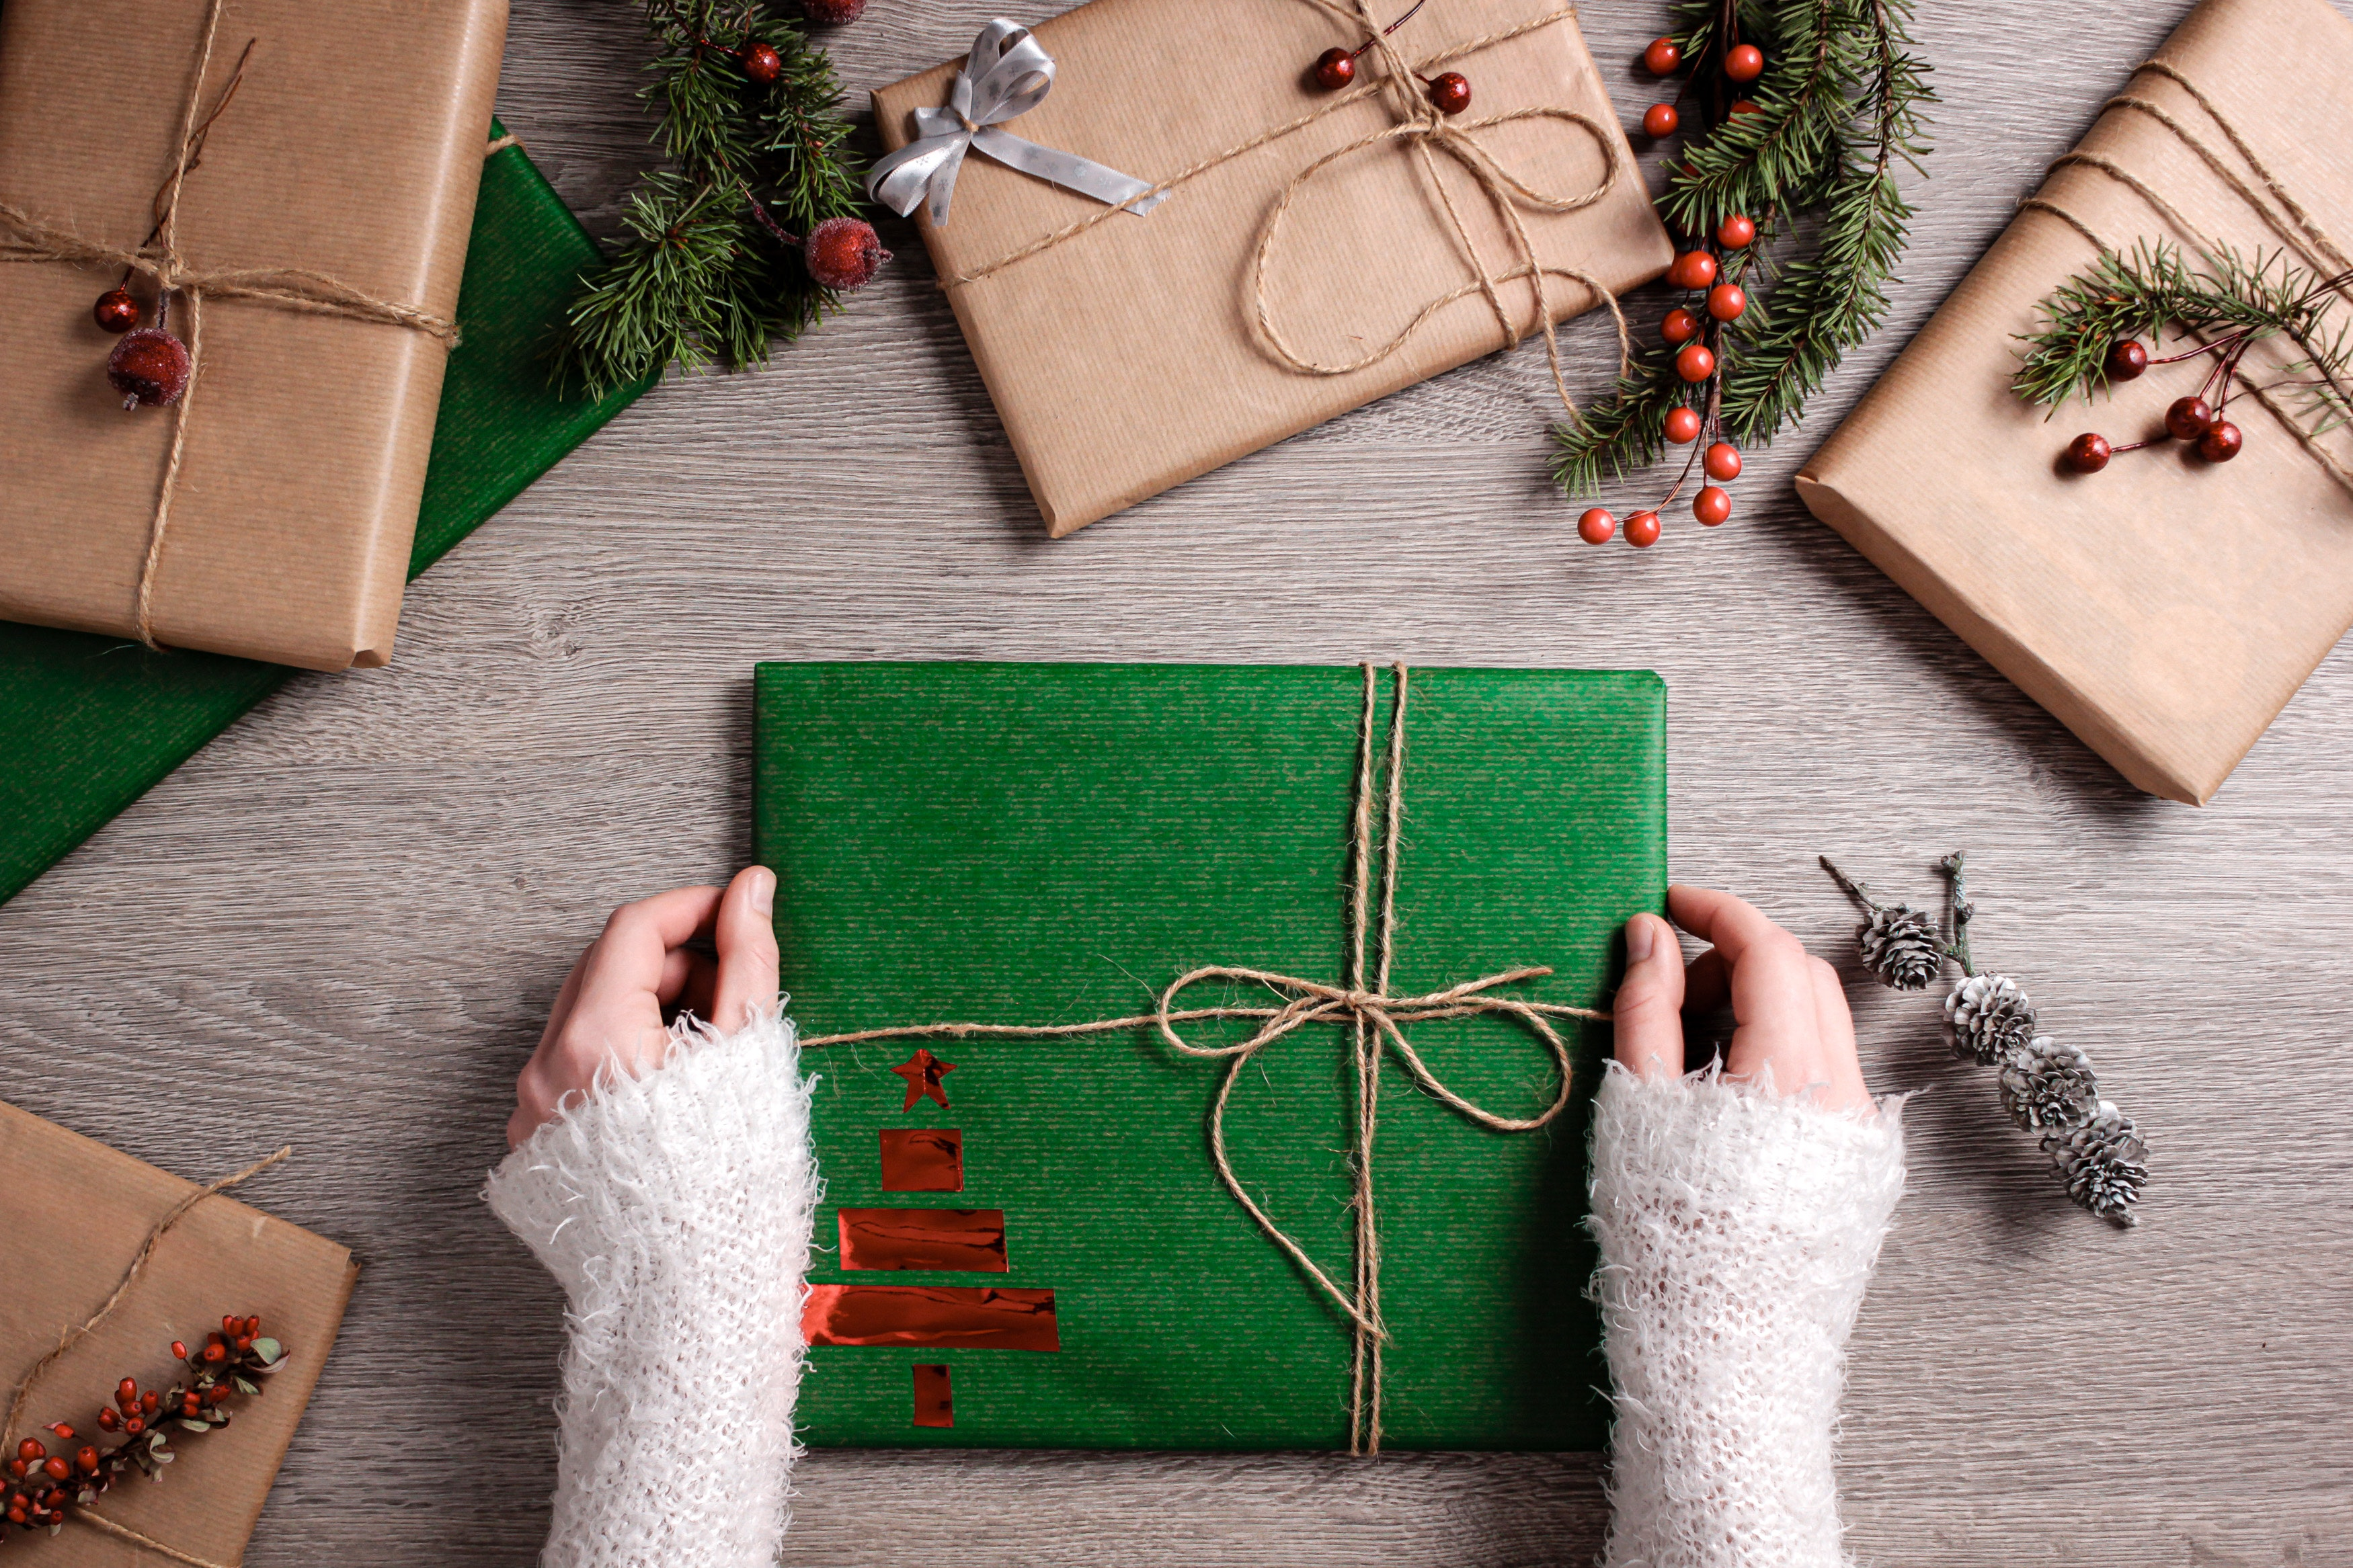 wrapped-presents-3298041